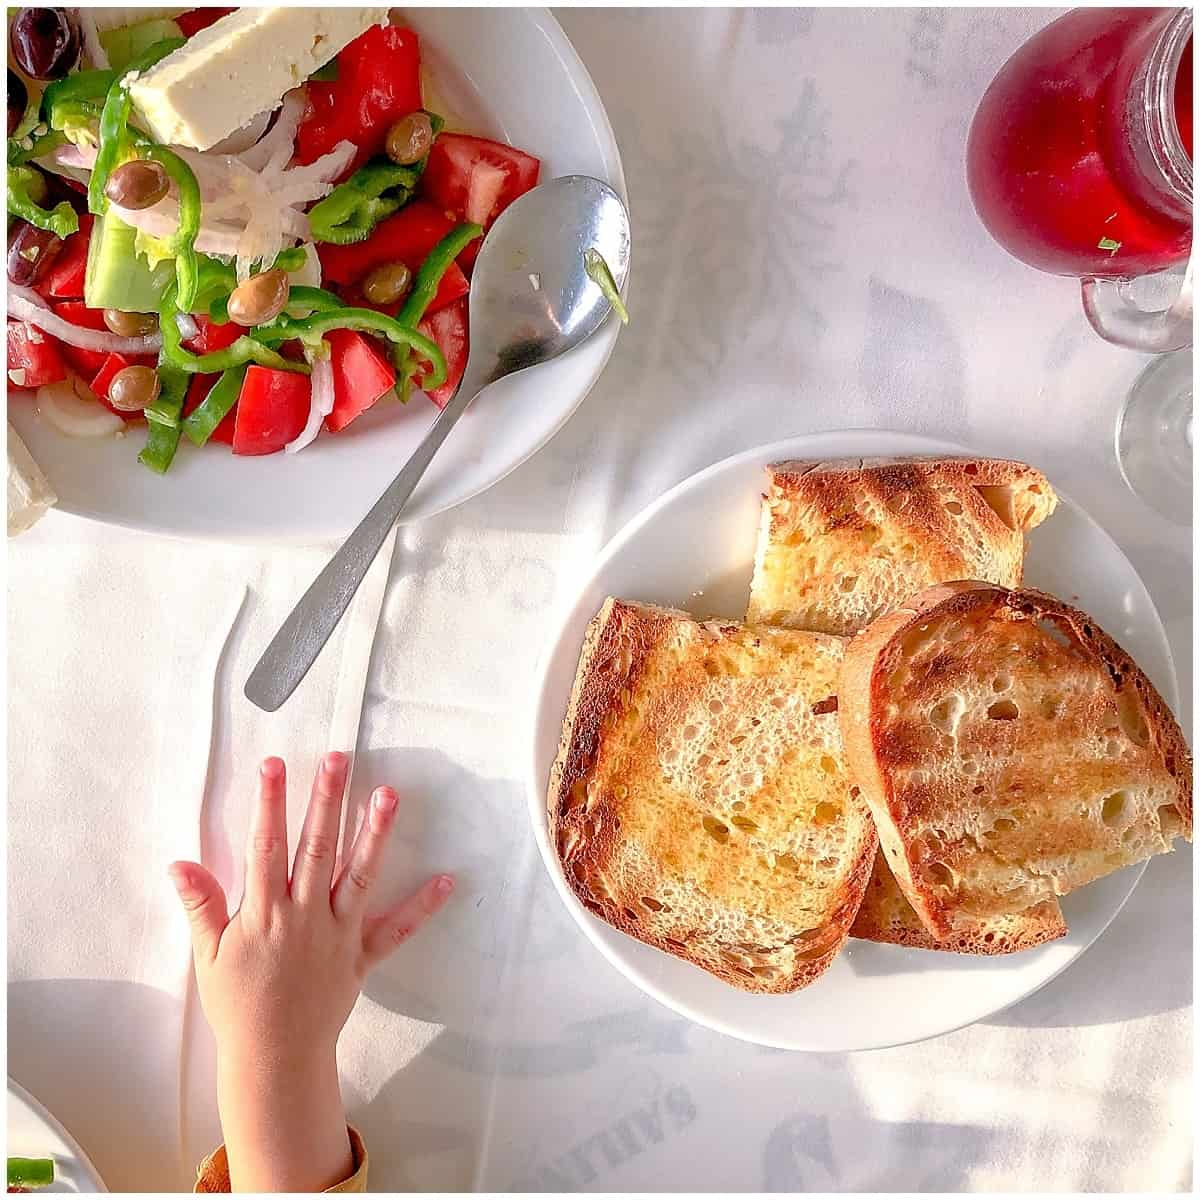 Toddler hand reaches for bread and Greek salad